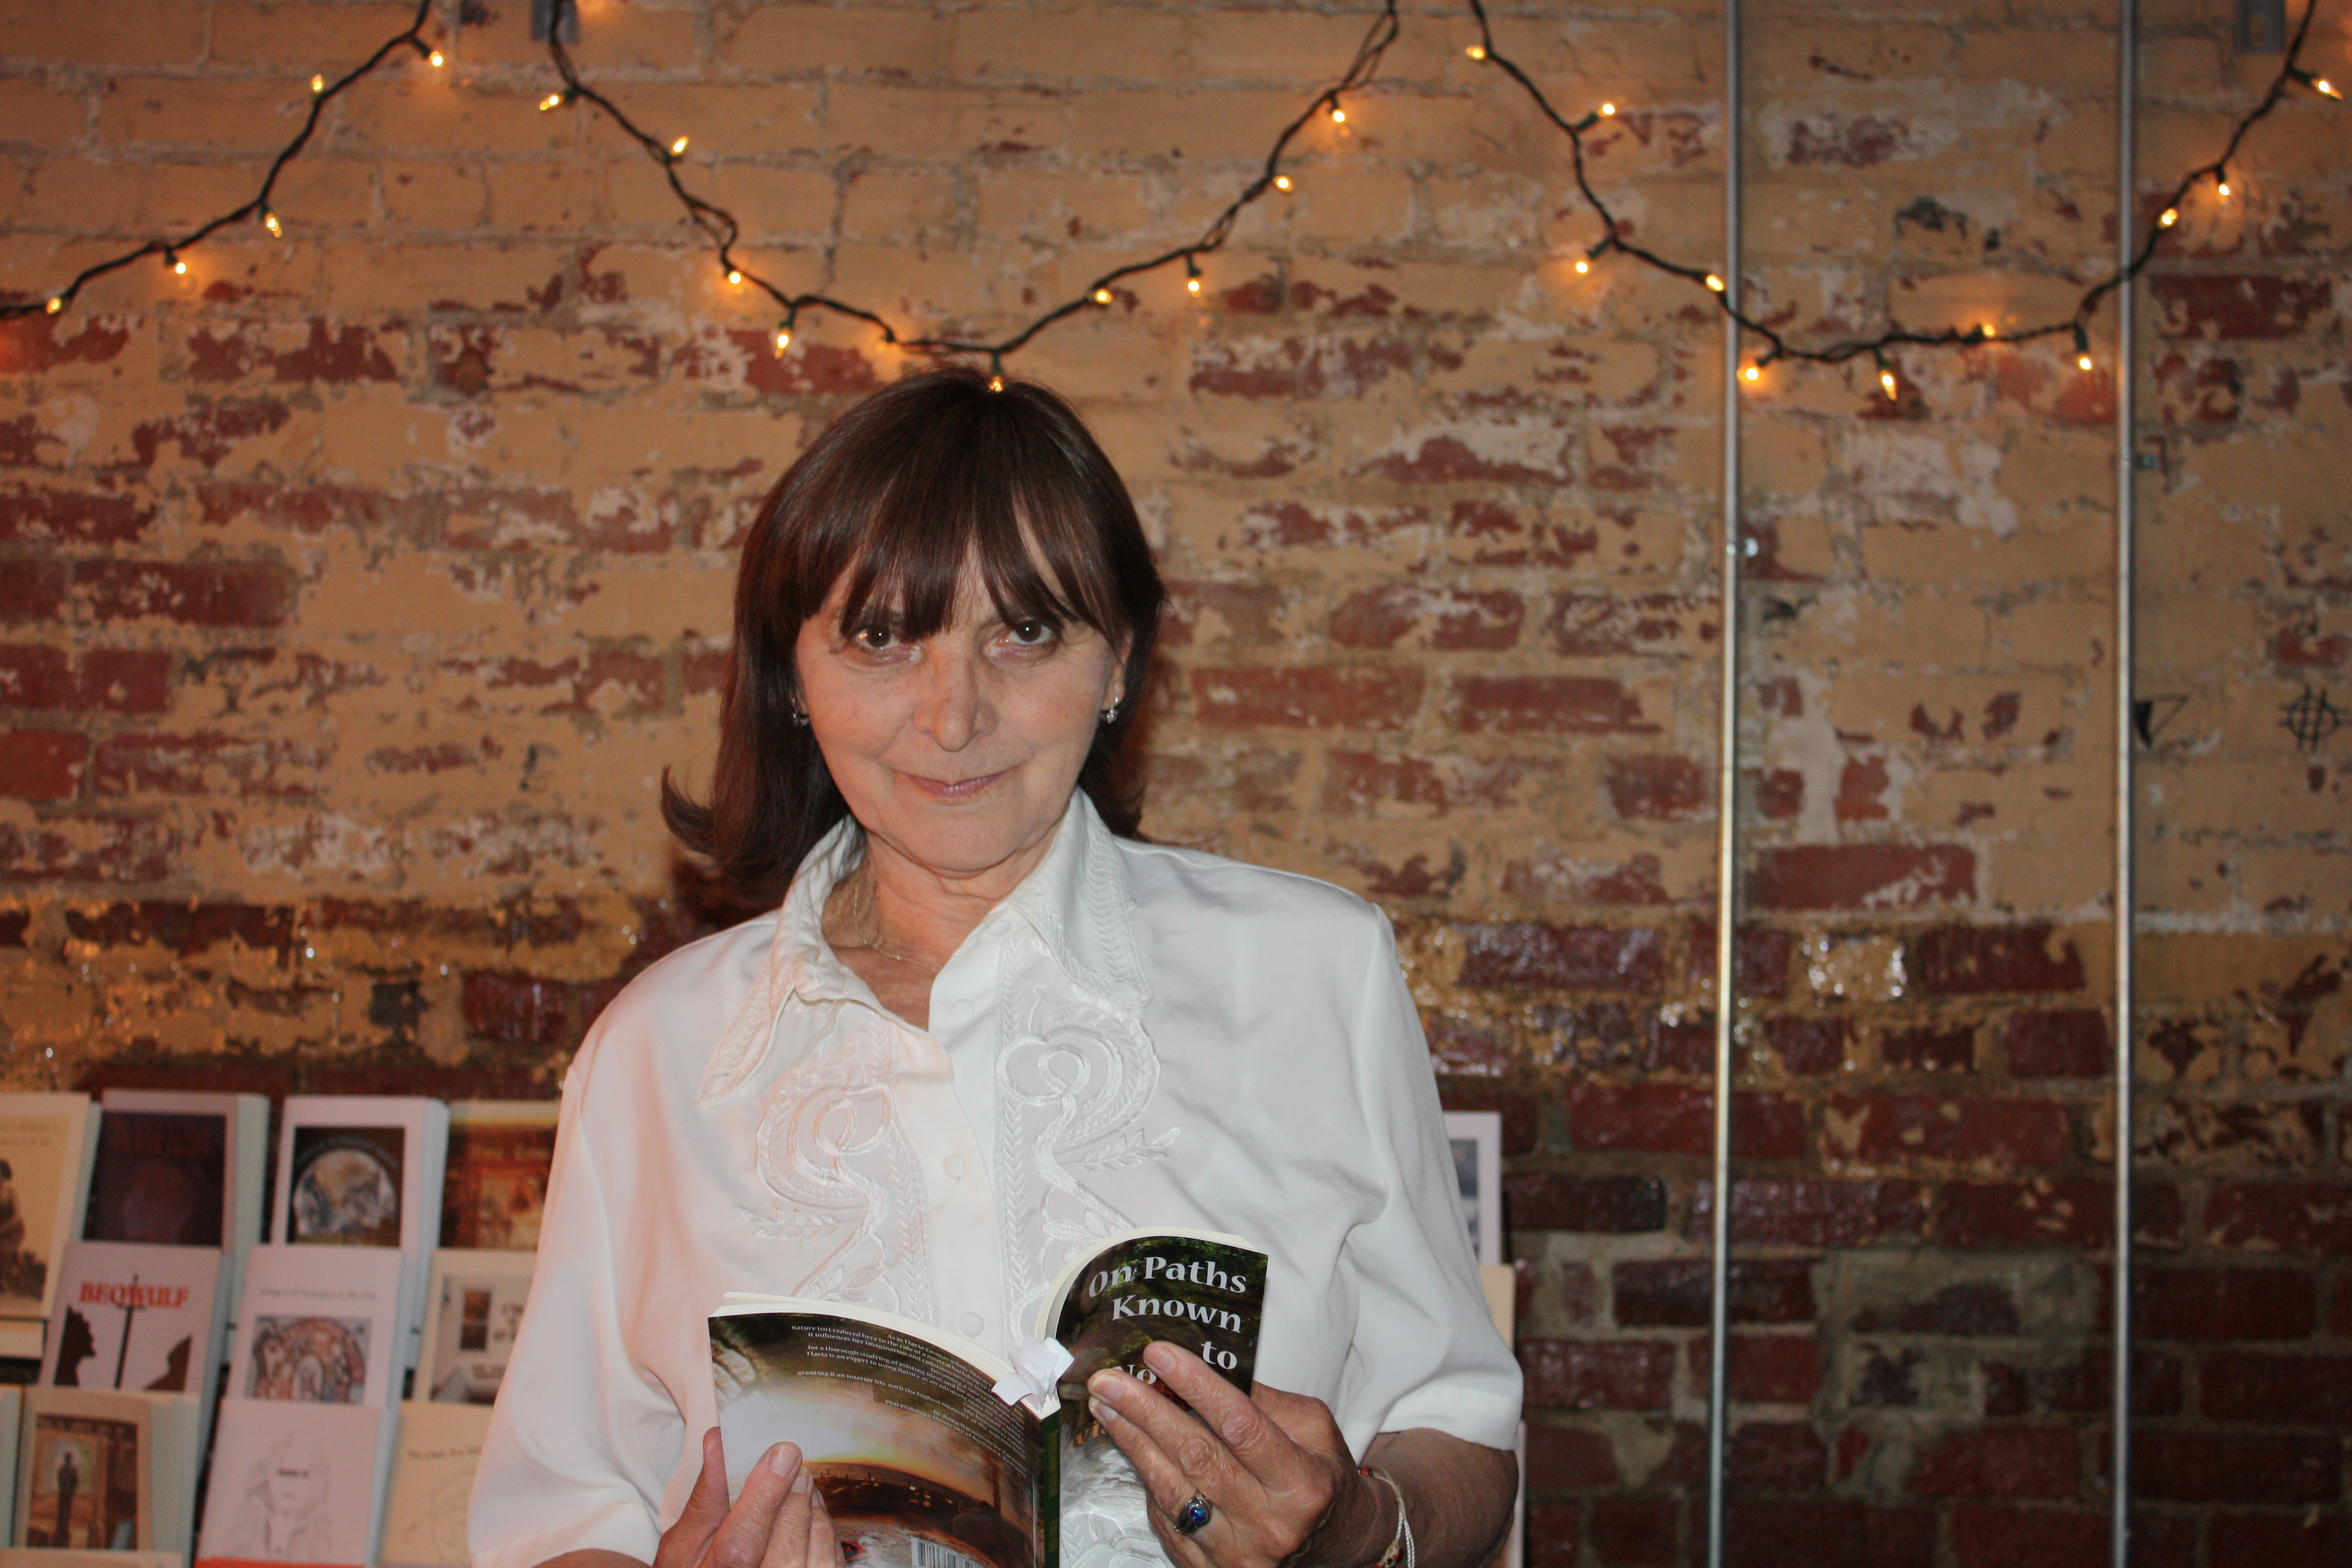 Flavia Cosma holding abook wearing a white button-up shirt